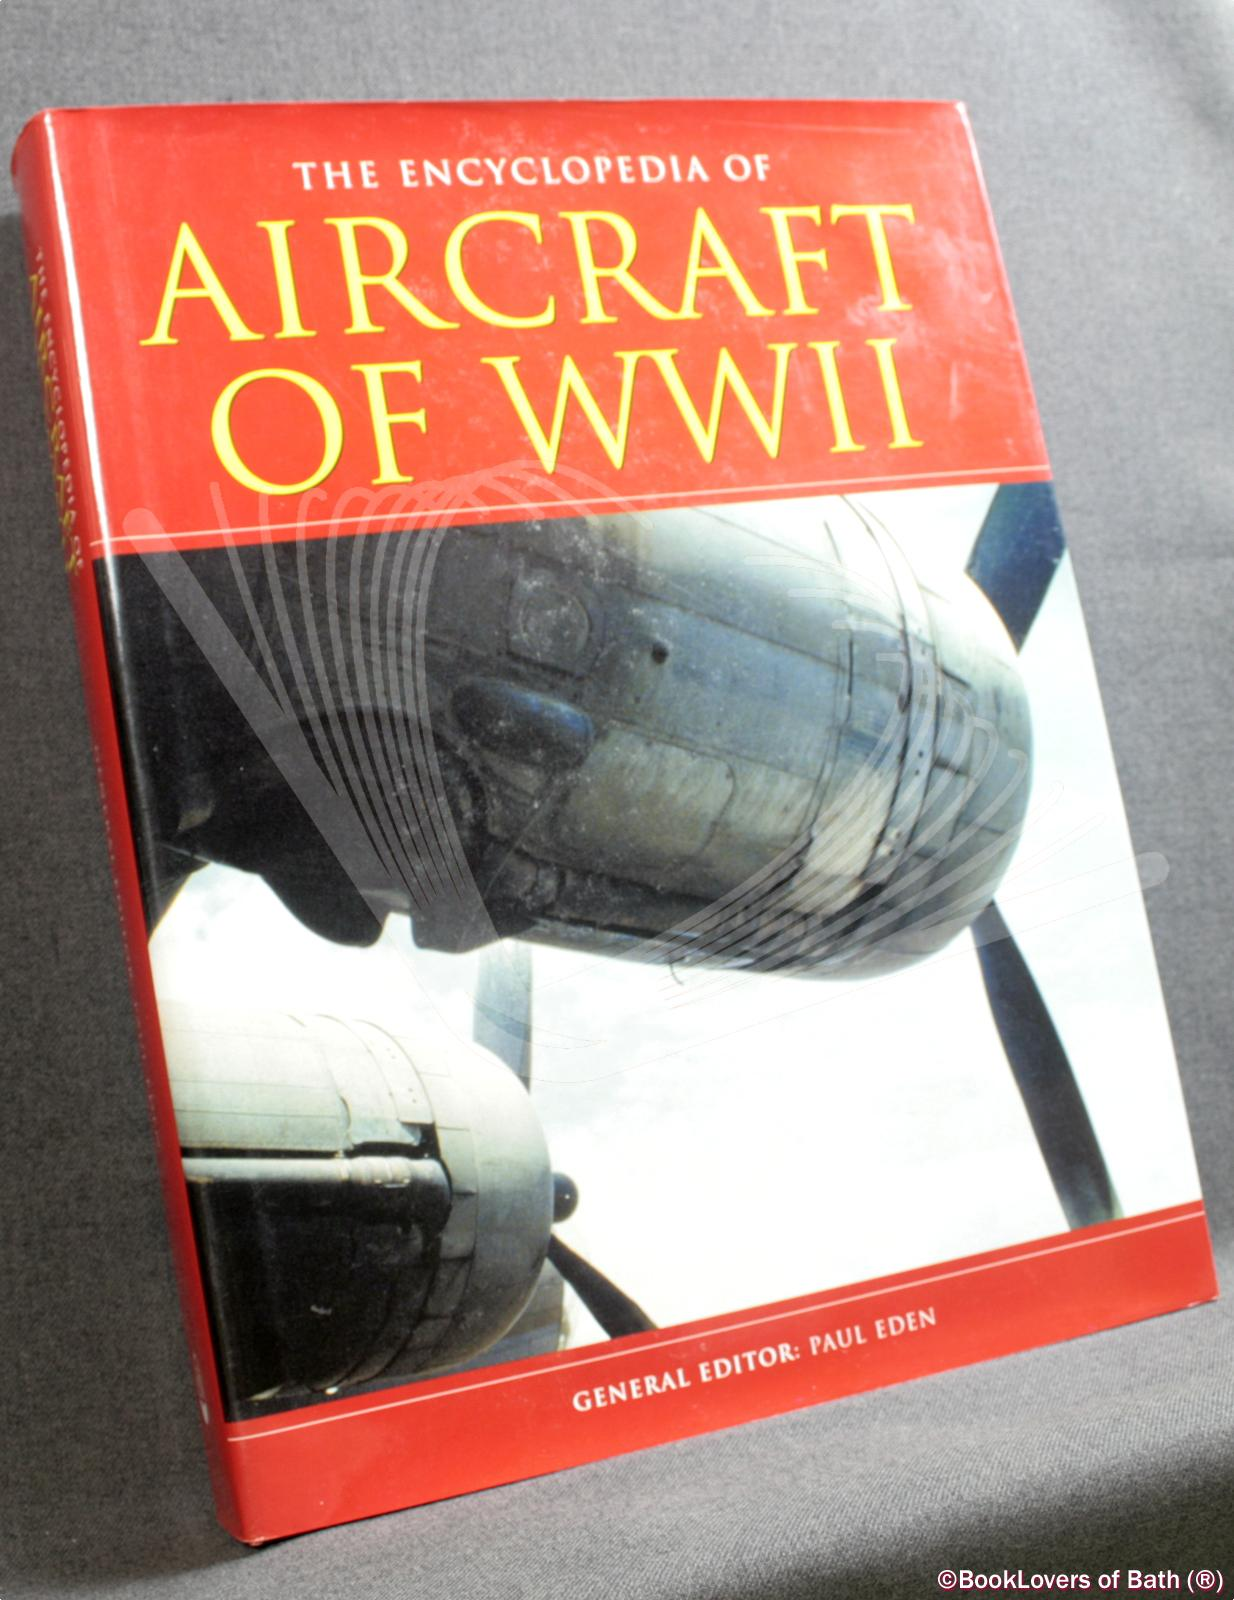 The Encyclopedia of Aircraft of WWII - Paul Eden